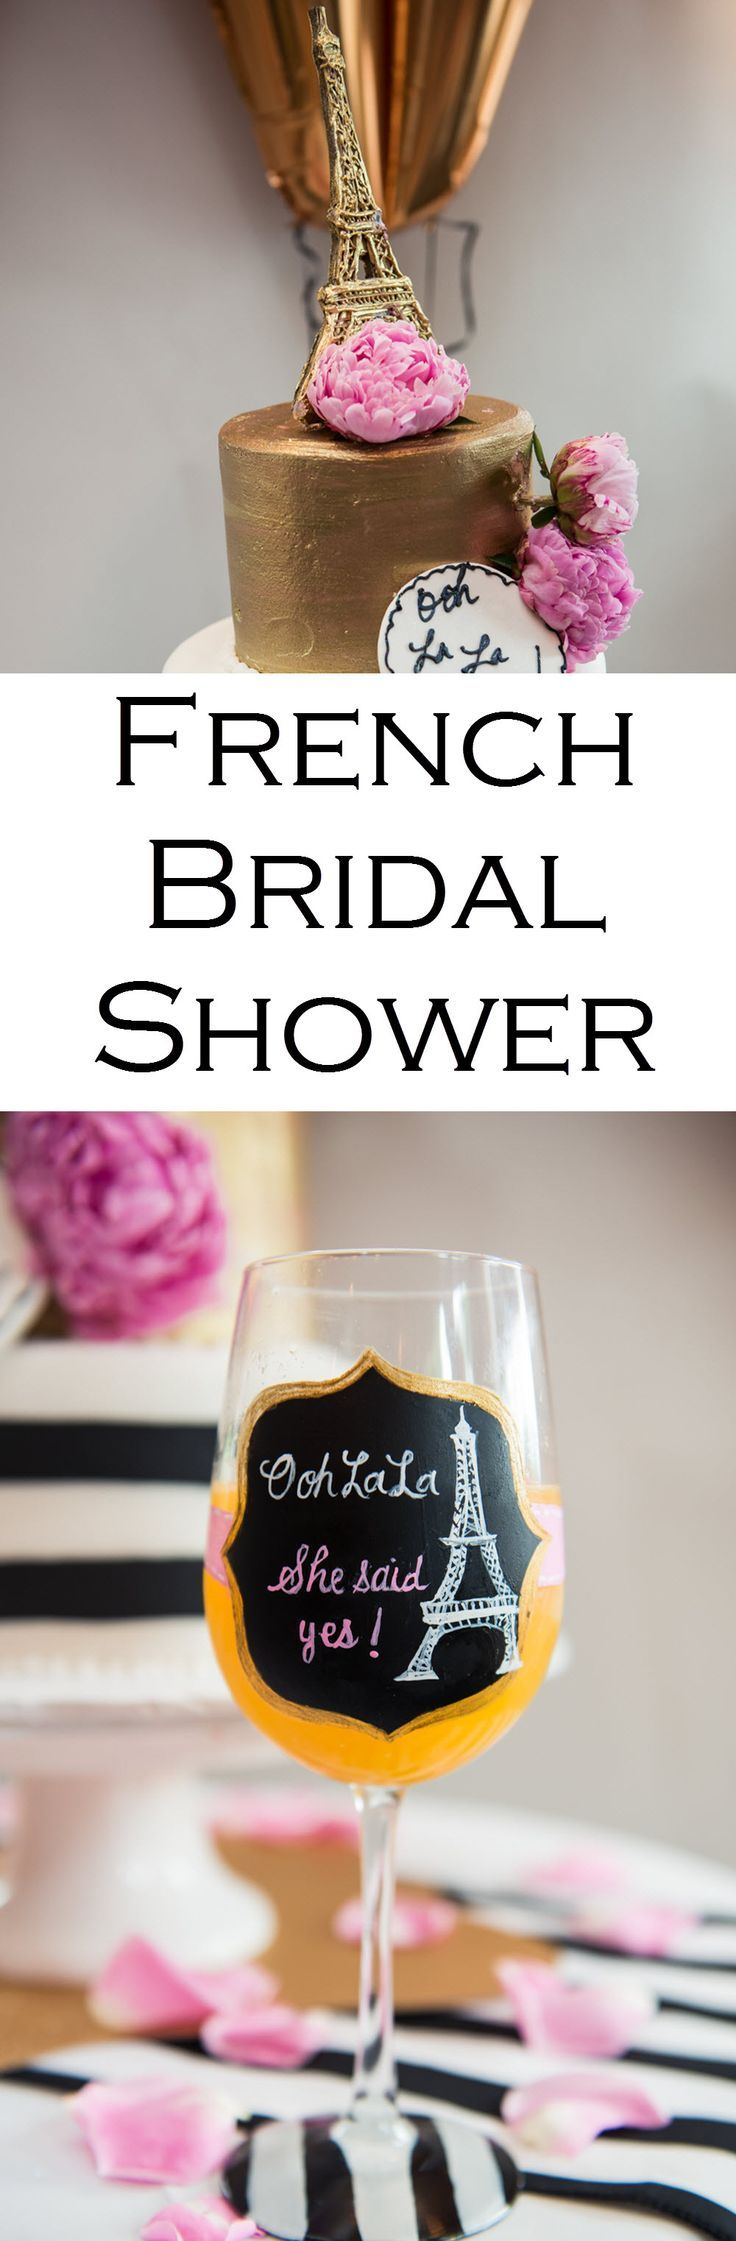 wedding shower poem ideas%0A A Paris  France Themed Bridal Shower  Great ideas for the cake  drinks